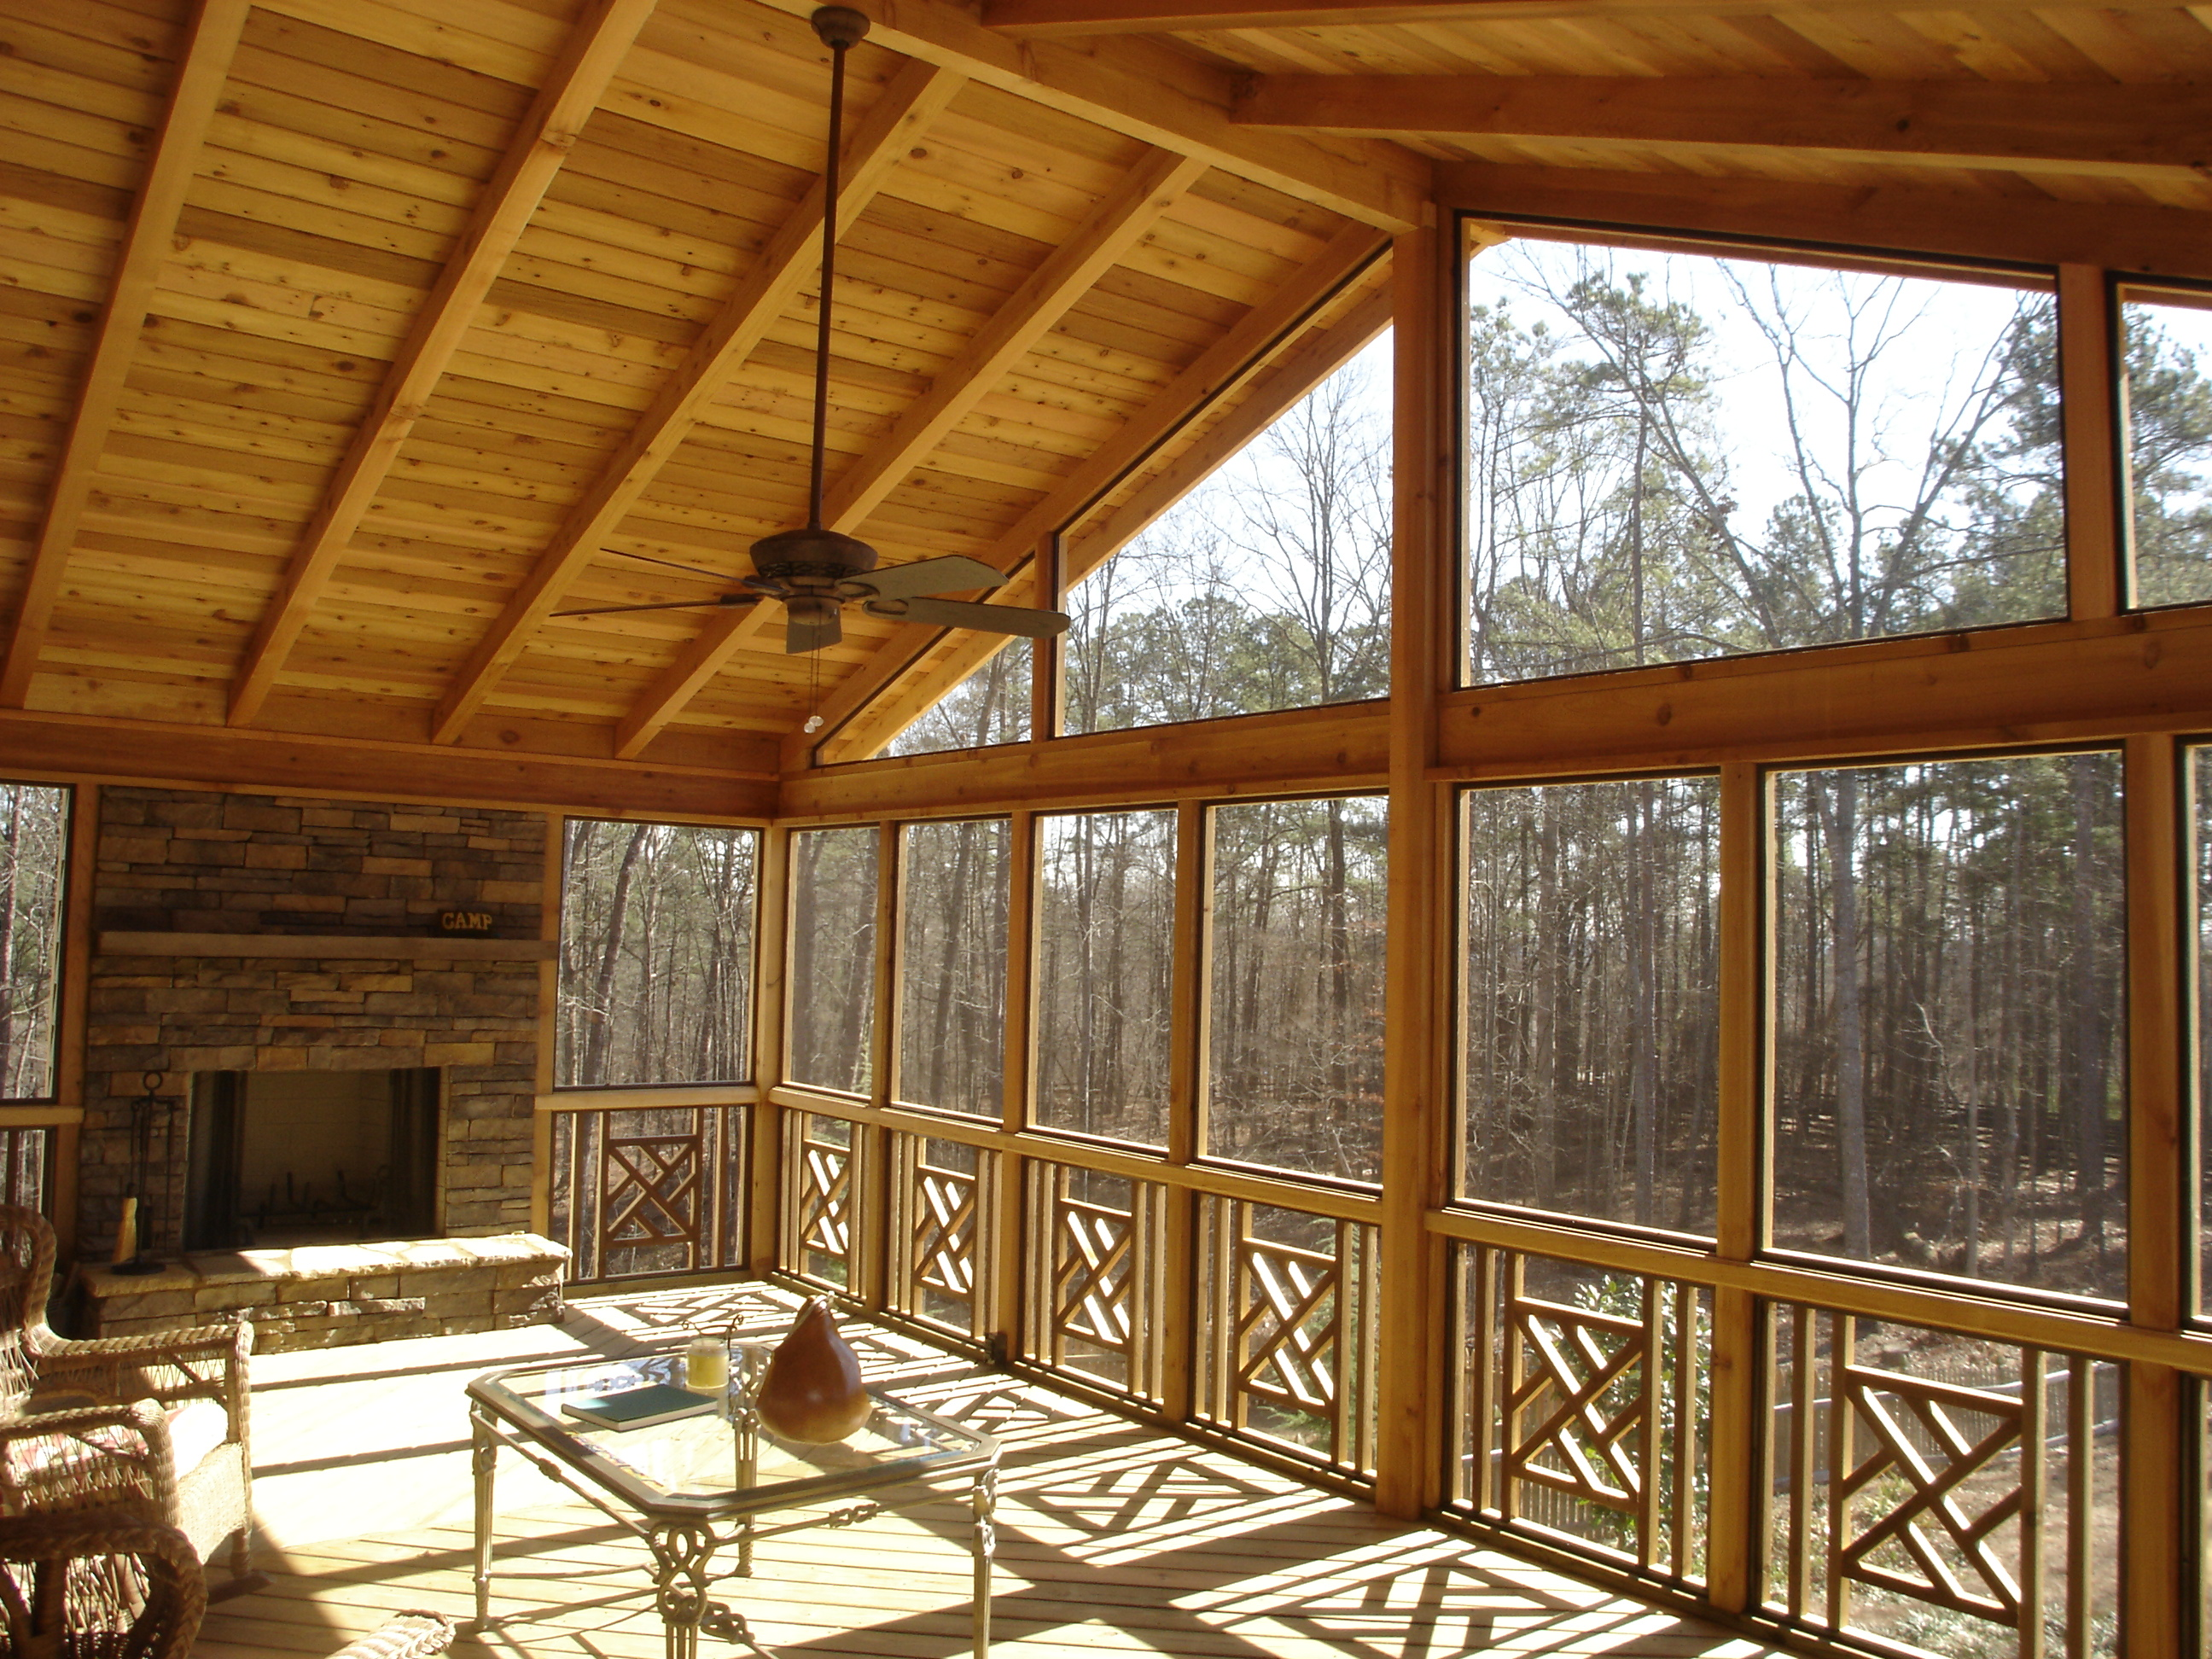 Top 10 reasons for building a screen porch columbus decks porches and patios by archadeck of Screened porch plans designs